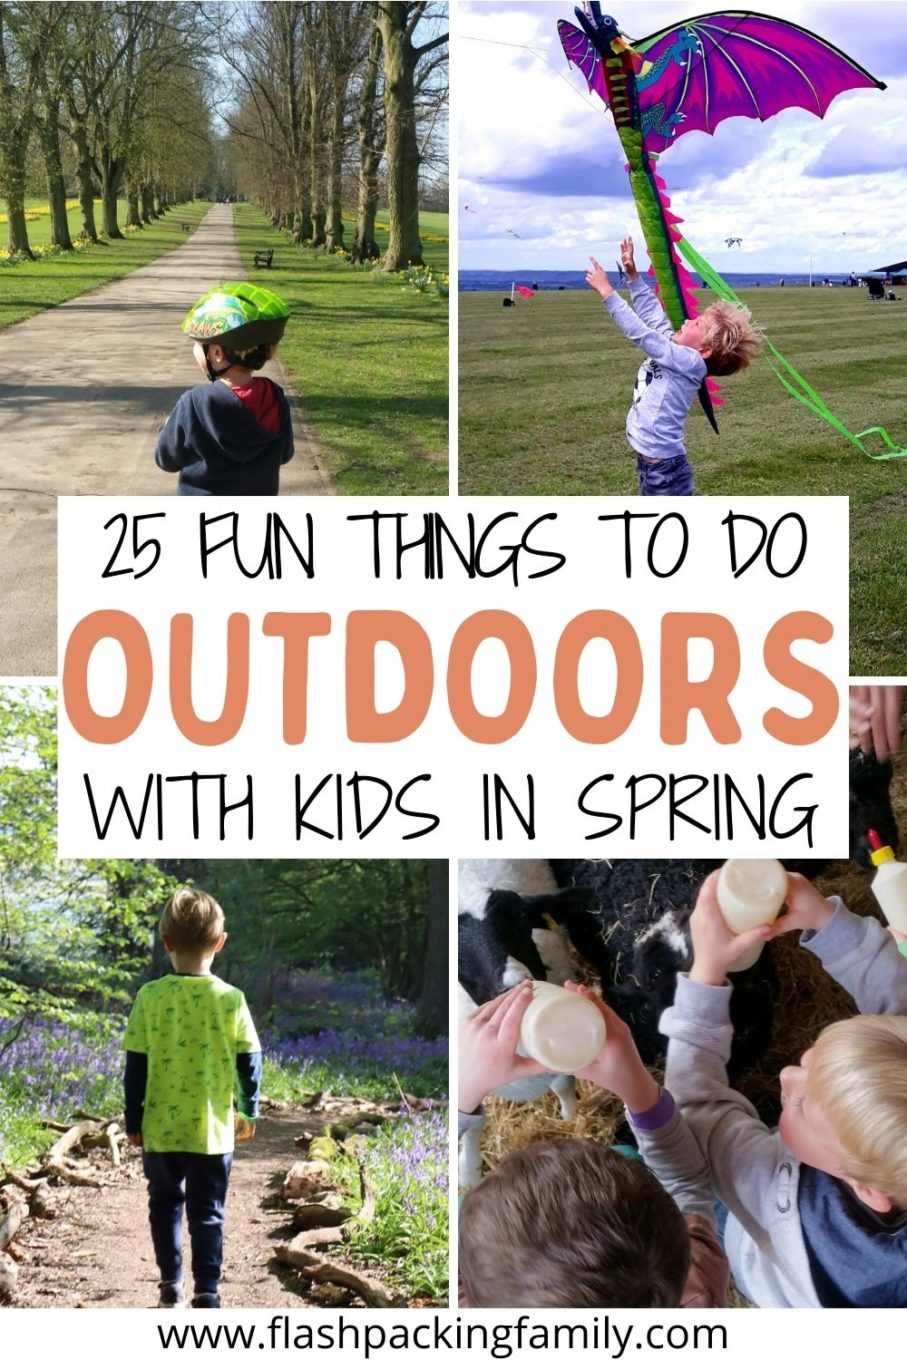 25 Fun things to do outdoors with kids in Spring.